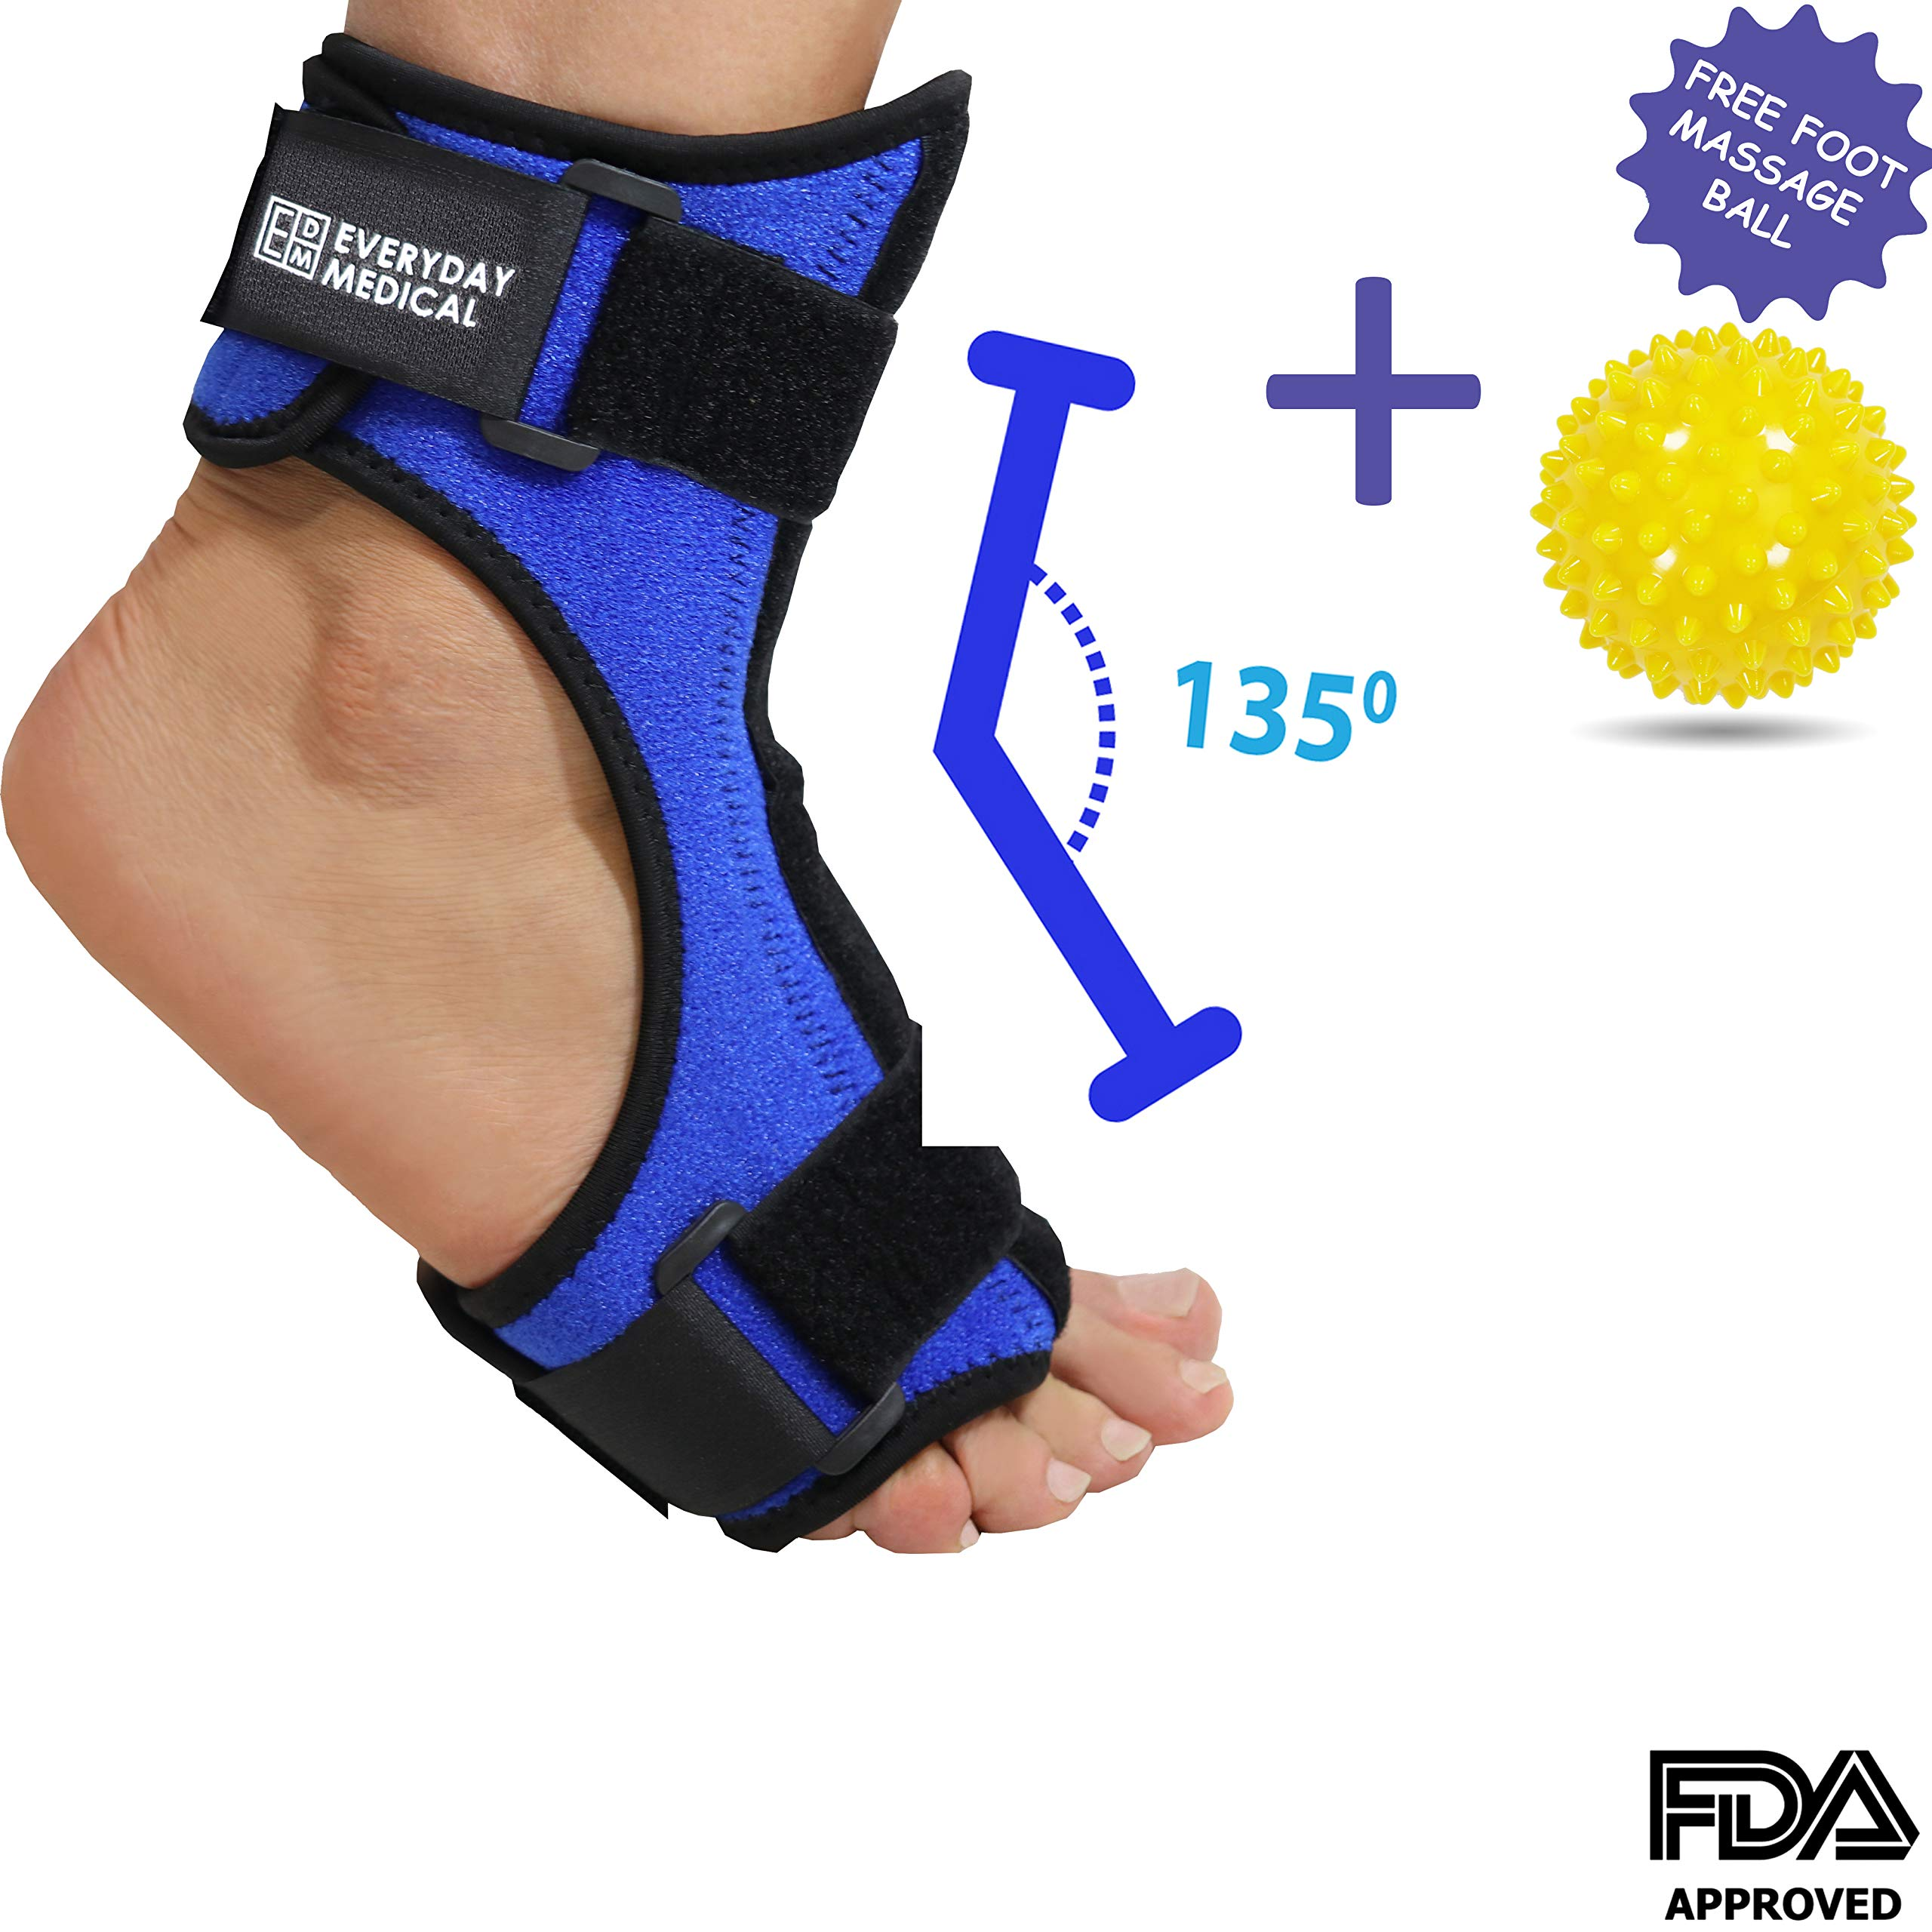 Everyday Medical Plantar Fasciitis Night Stretching Splint, Plantar Fasciitis Arch Support for Better Stability, Plantar Fascia Night Splint, Relief from Achilles Tendonitis, Arch Foot and Heel Pain